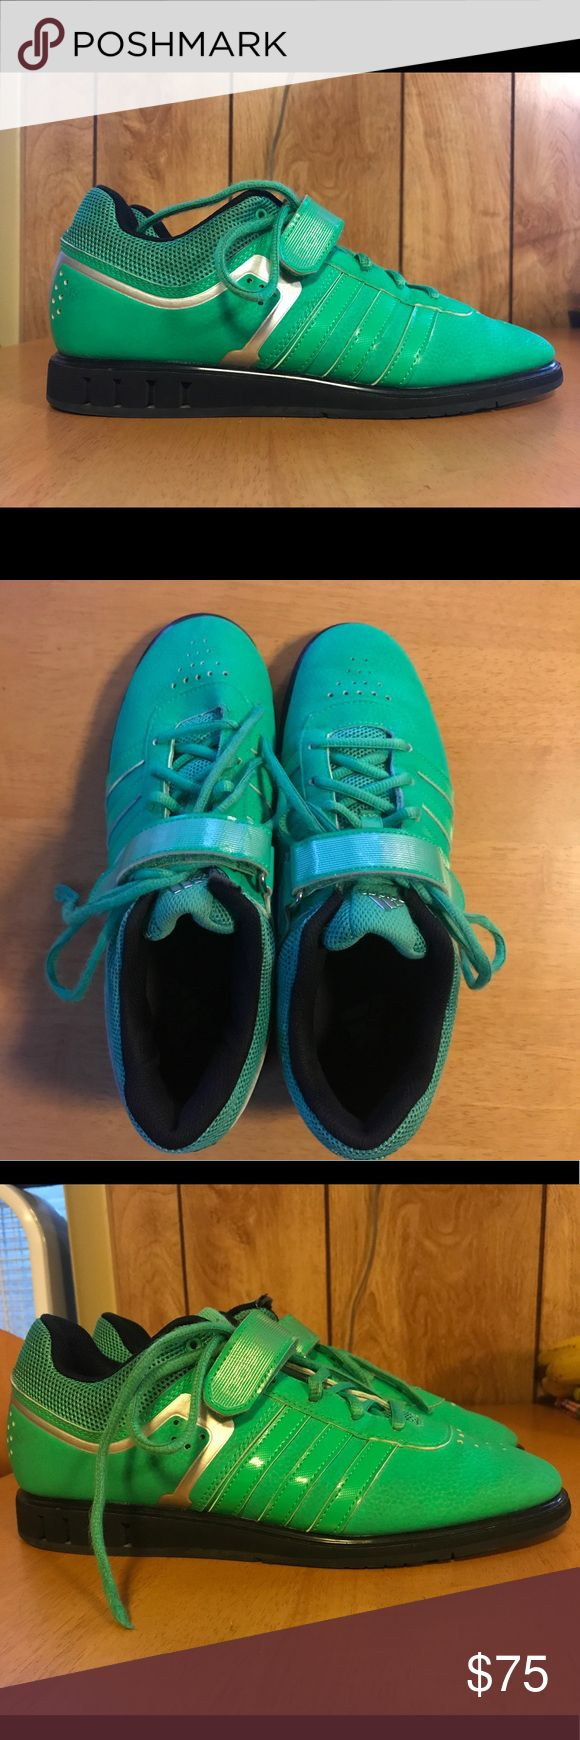 Adidas Powerlift 2.0 lifting shoes Worn for almost daily training sessions for approximately 6 months. Excellent preworn condition. Never worn outside of the gym, so the soles are nearly new. The best photo representing the color of the shoes is the third photo. They are bright green. They're a Men's size 8 but fit Women's size 9.5/10 just fine. They are excellent for beginner lifters, however, I watched a girl squat 420# in a pair of these shoes, so they're legit enough for experienced…